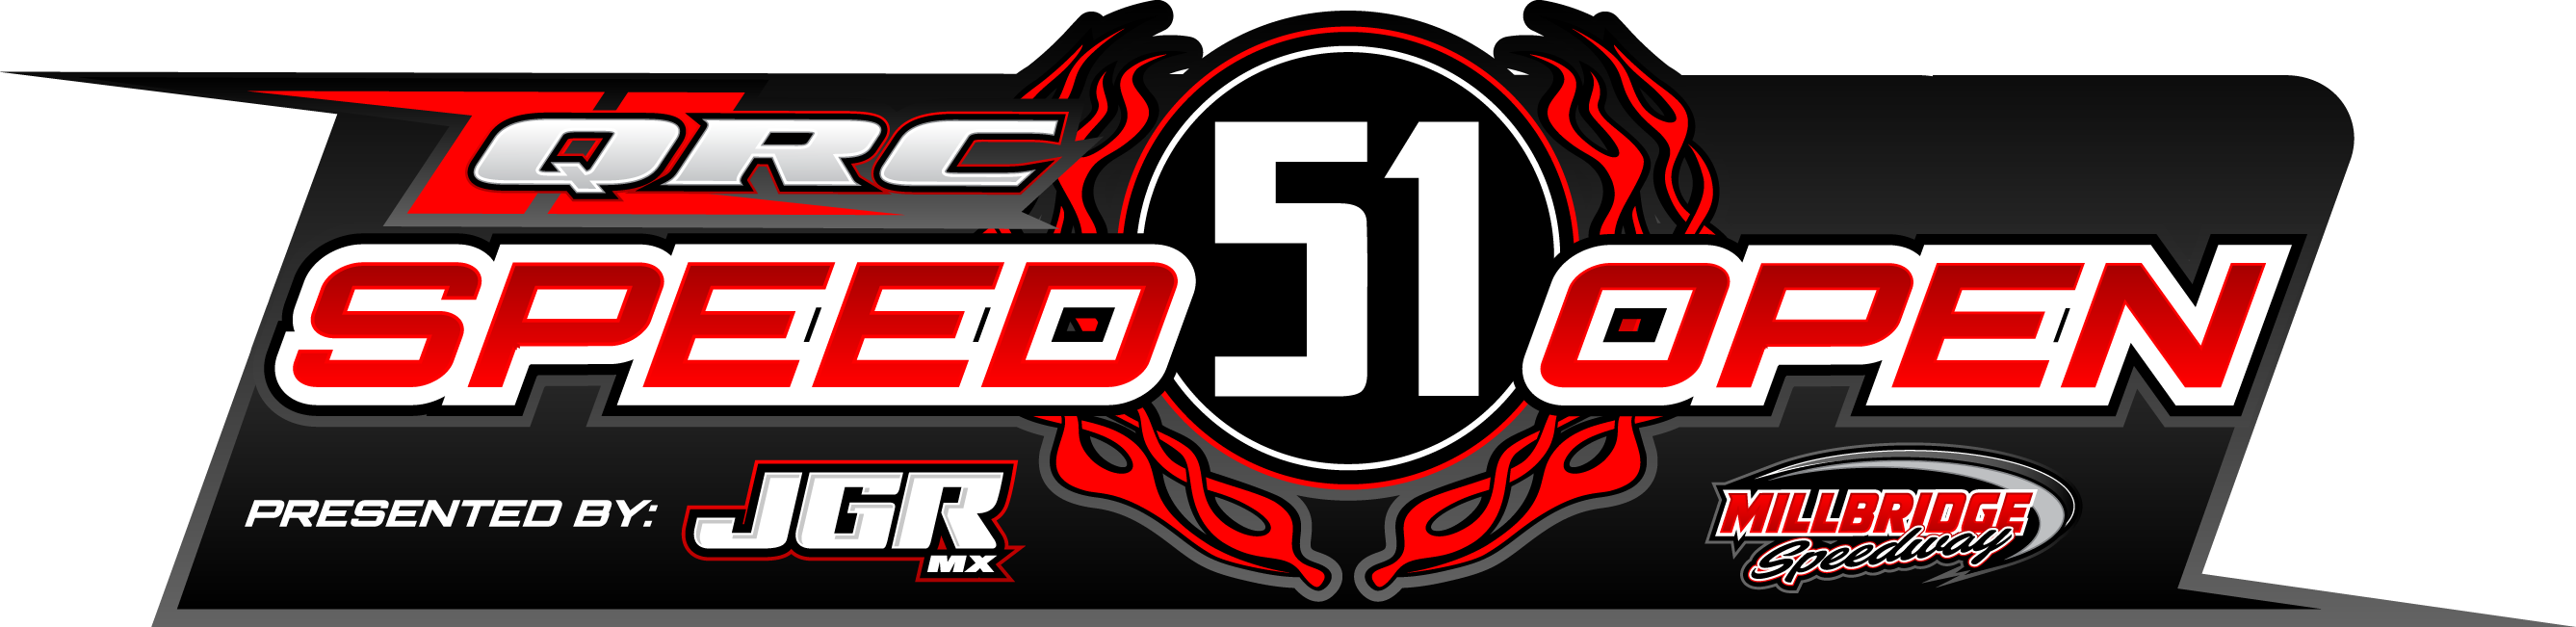 Purchase Your QRC Speed51 Open PPV Package Now